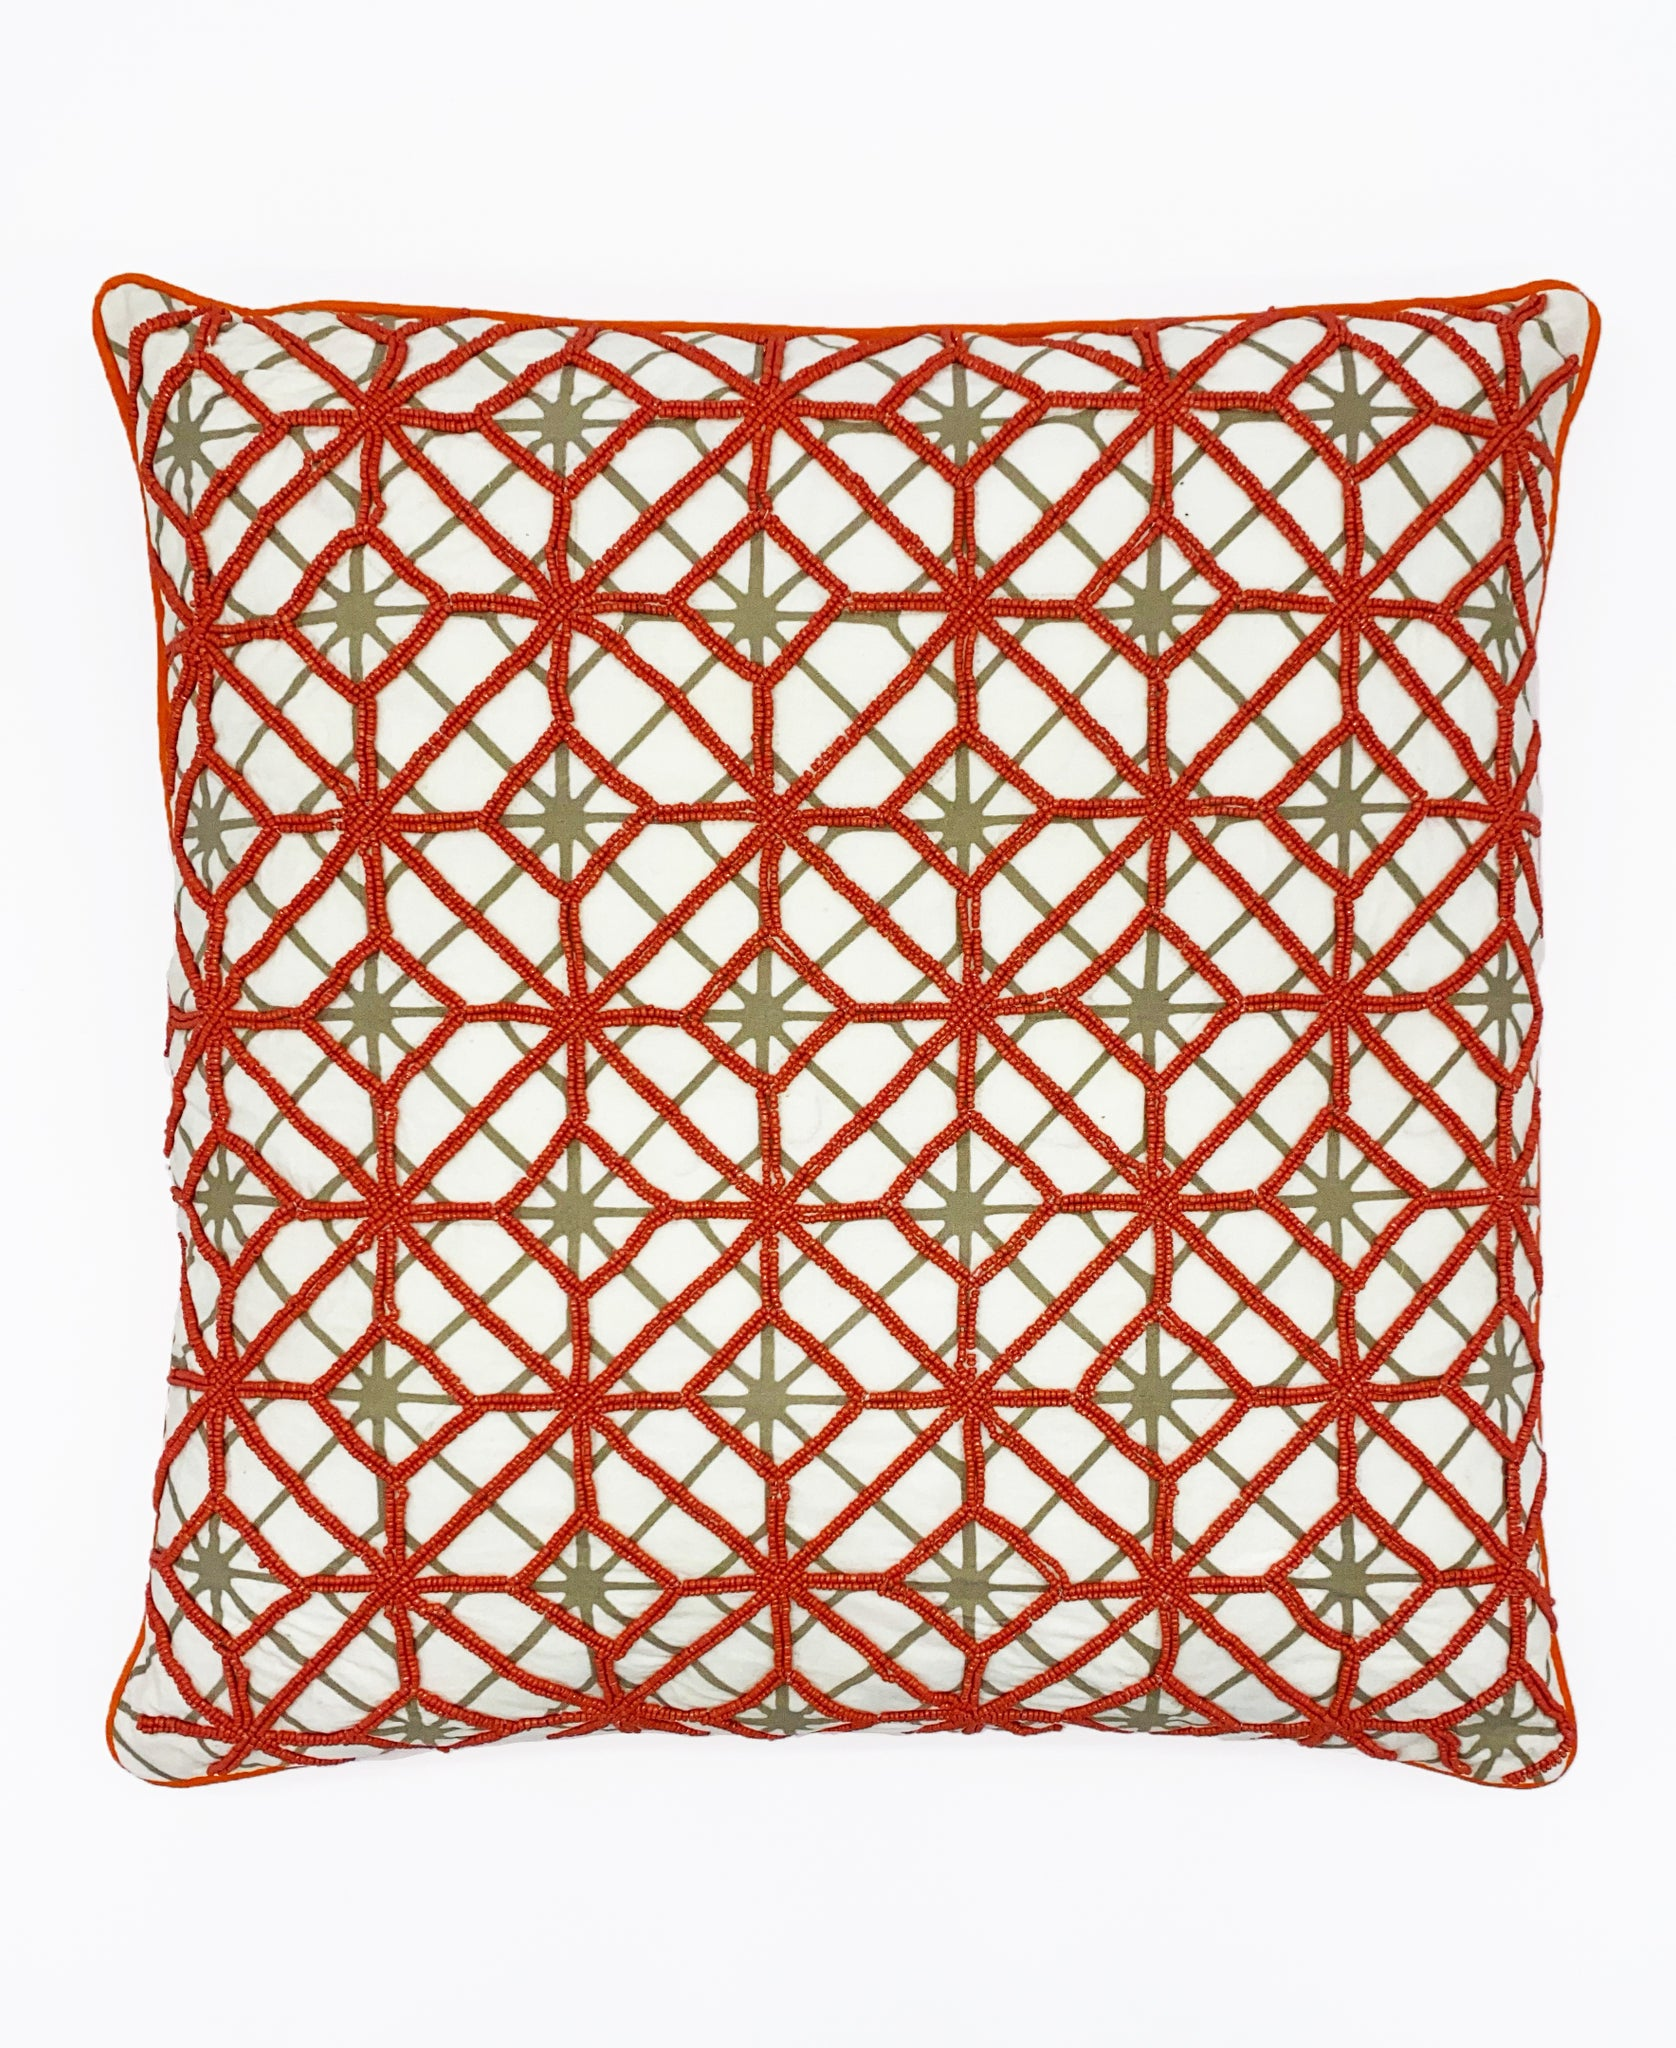 "Orange Abstract Geometric Embroidery Decorative Pillow, 18"" X 18"" Mod Lifestyles"